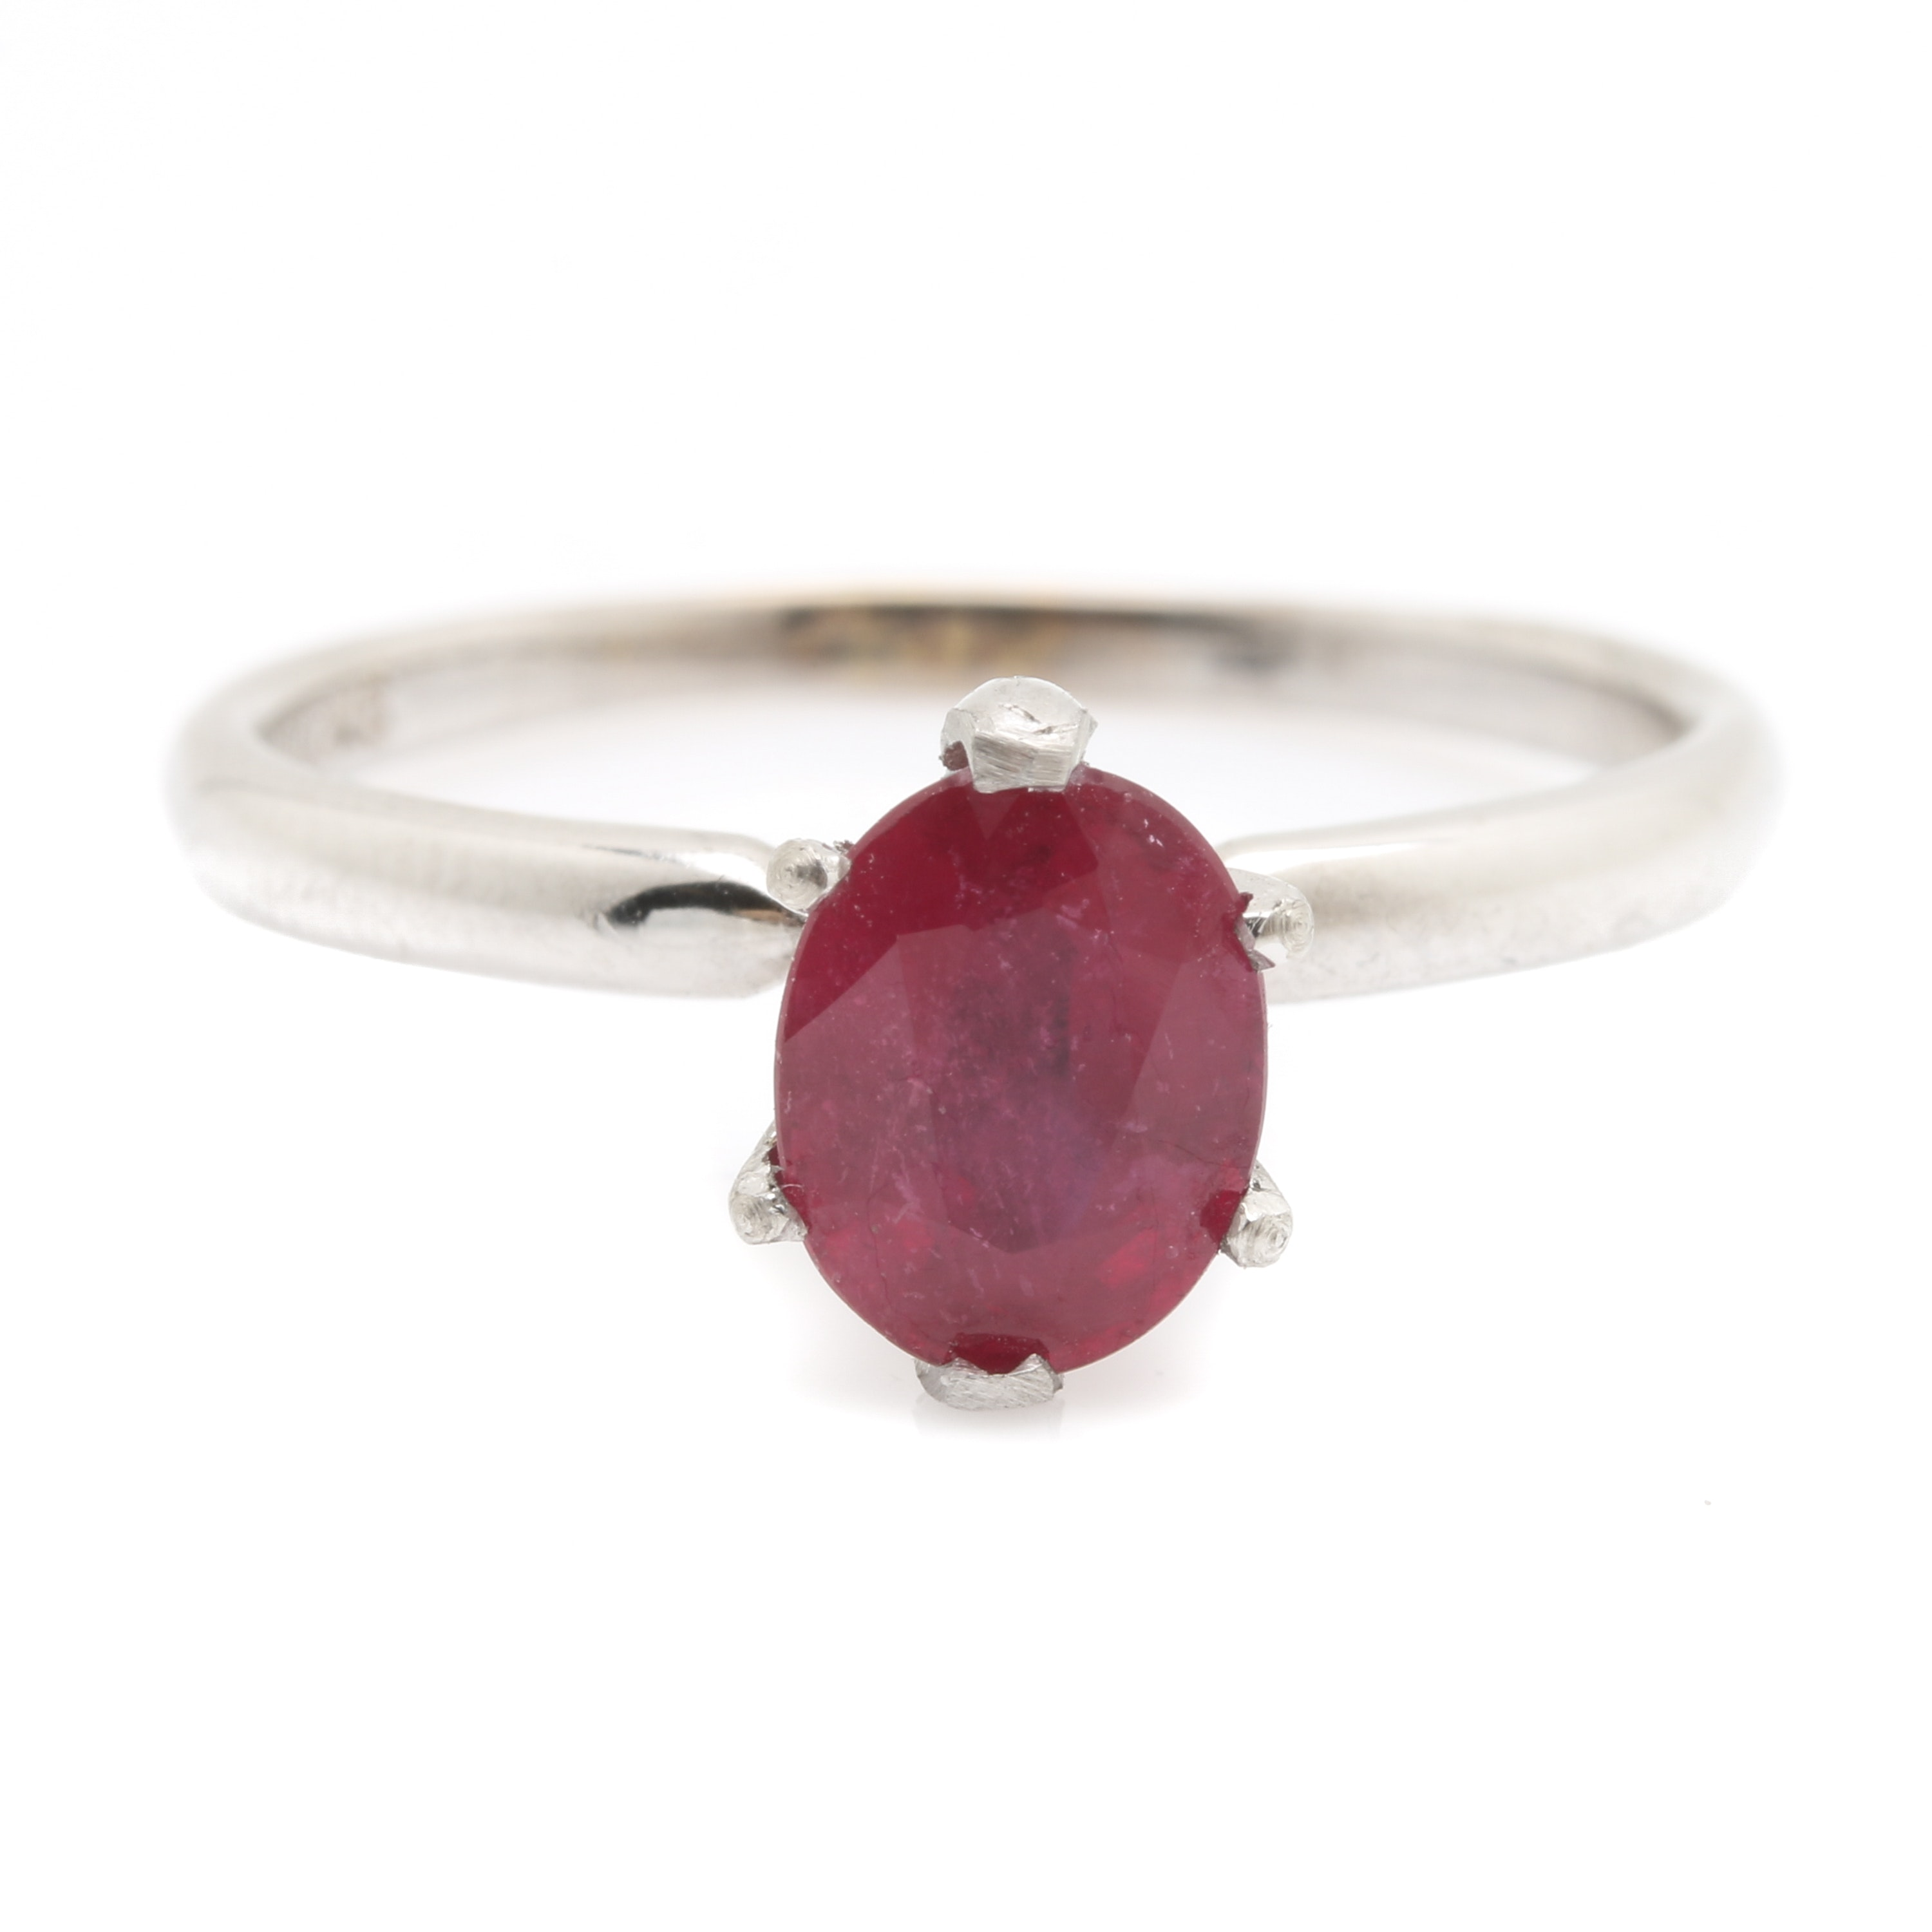 14K White Gold 1.57 CT Ruby Solitaire Ring